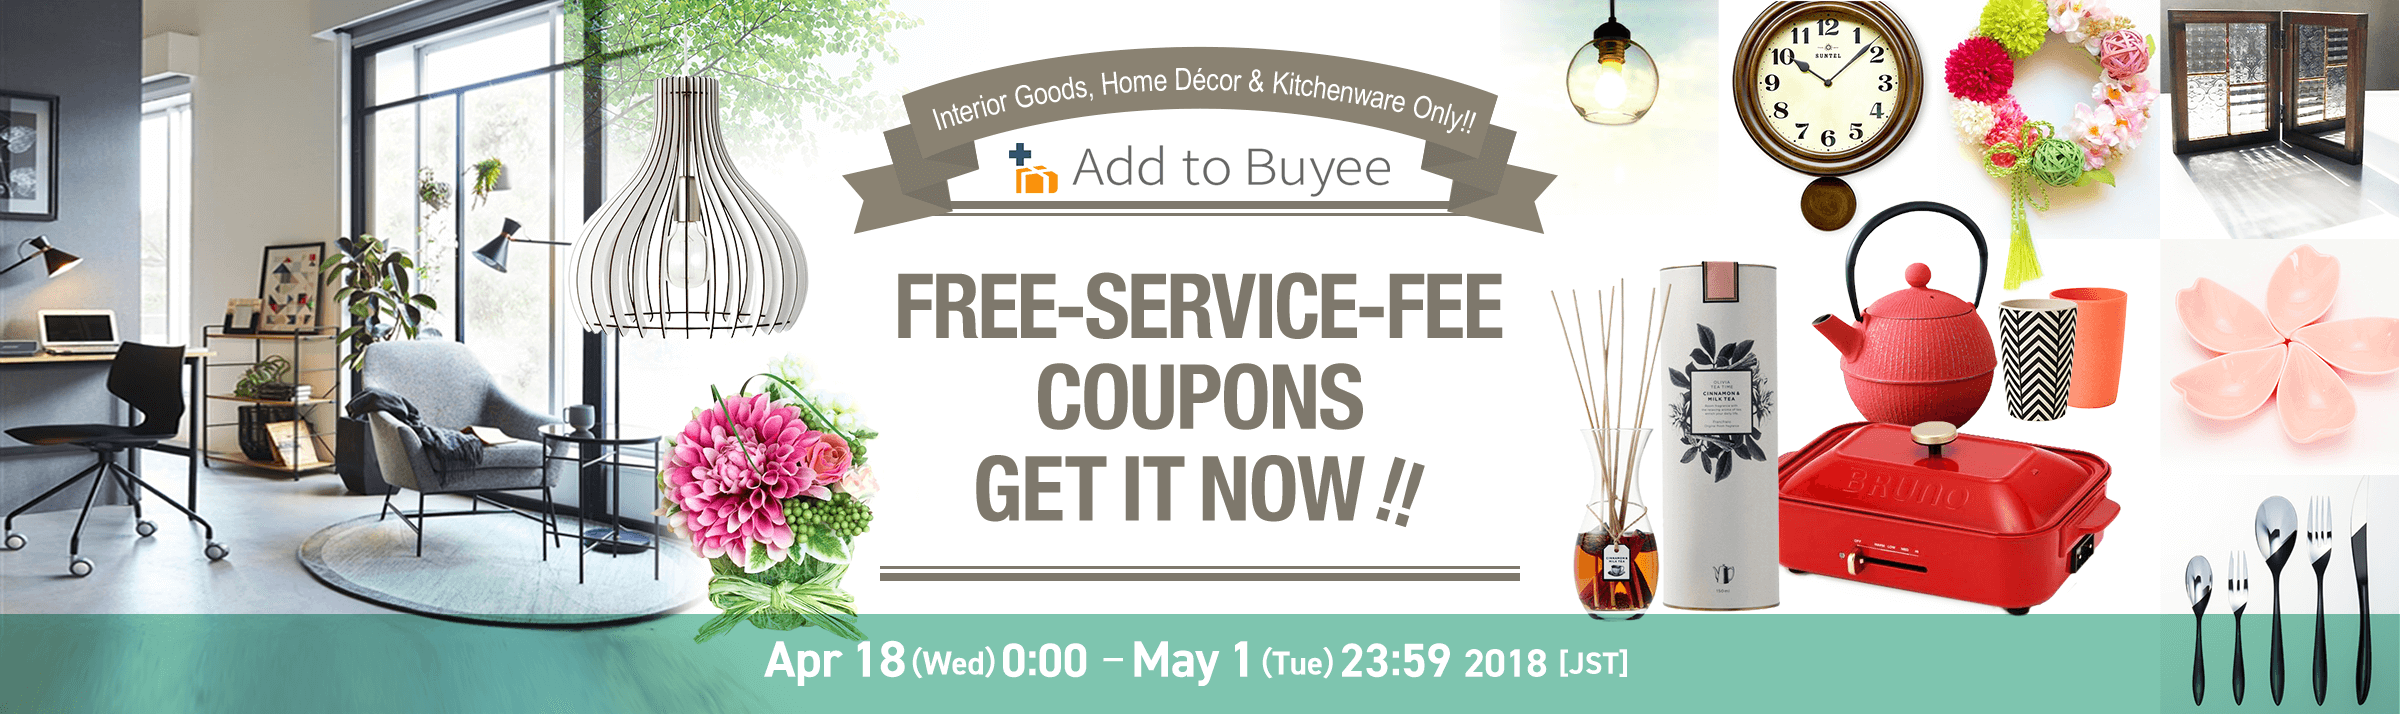 Free Service Fee Coupon Giveaway for Interior Goods, Home Décor & Kitchenware Stores Only!!